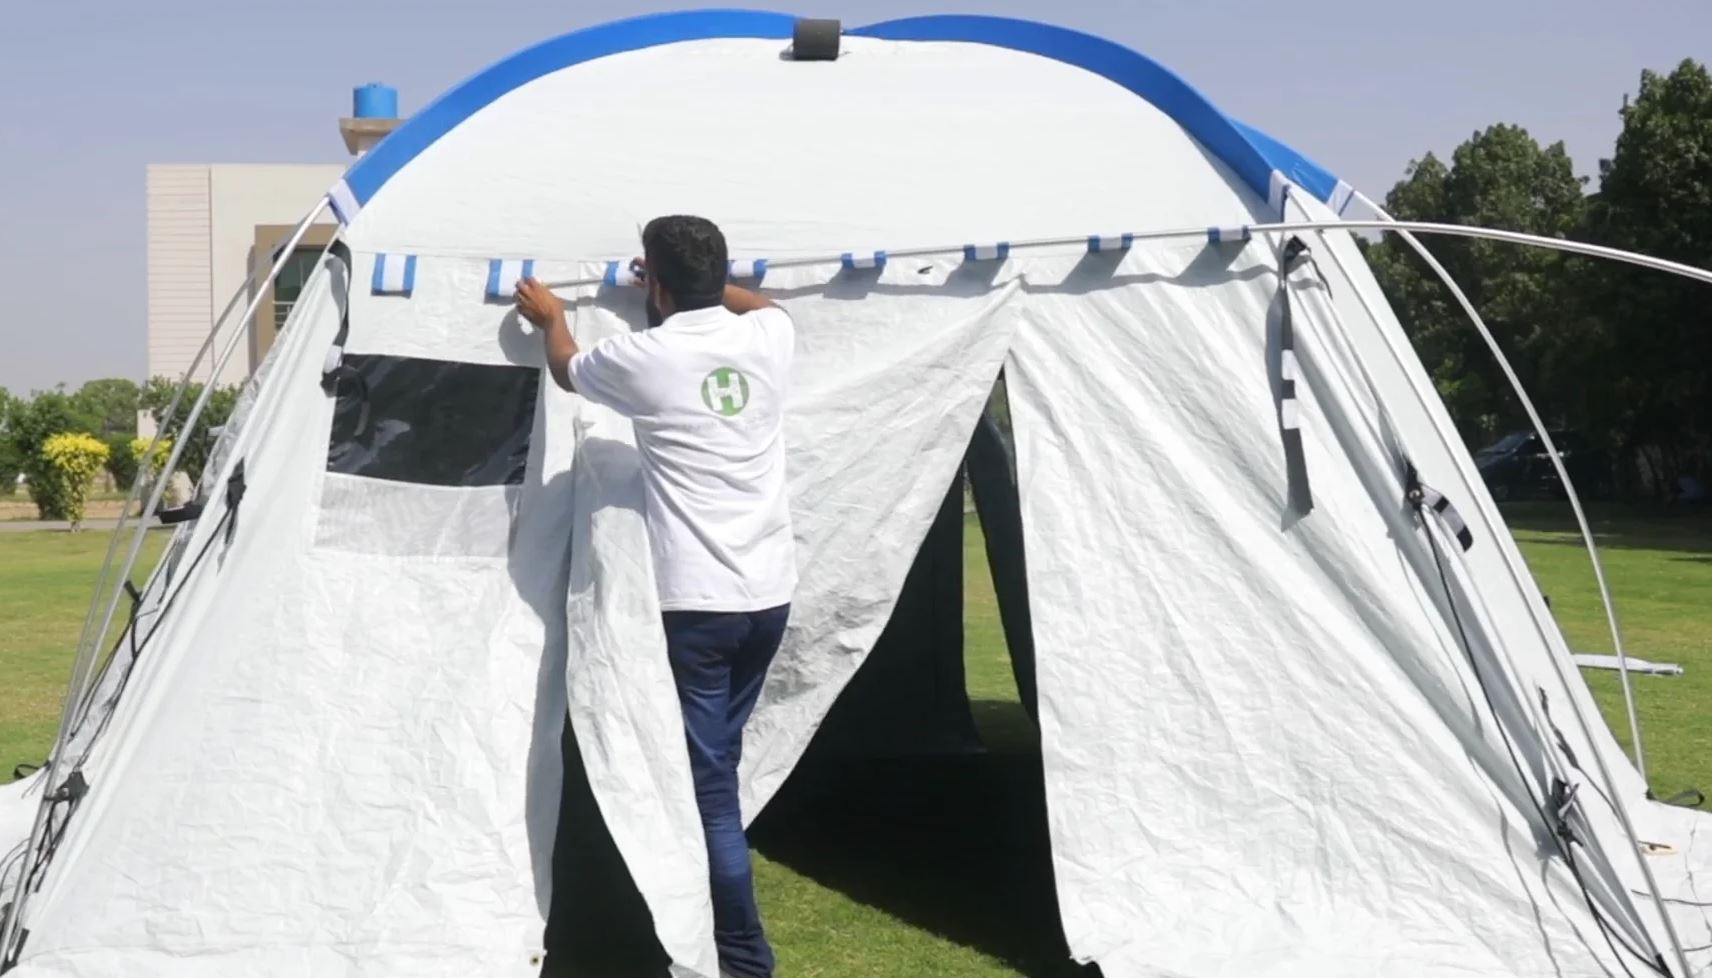 Geohome tent assembly video thumbnail